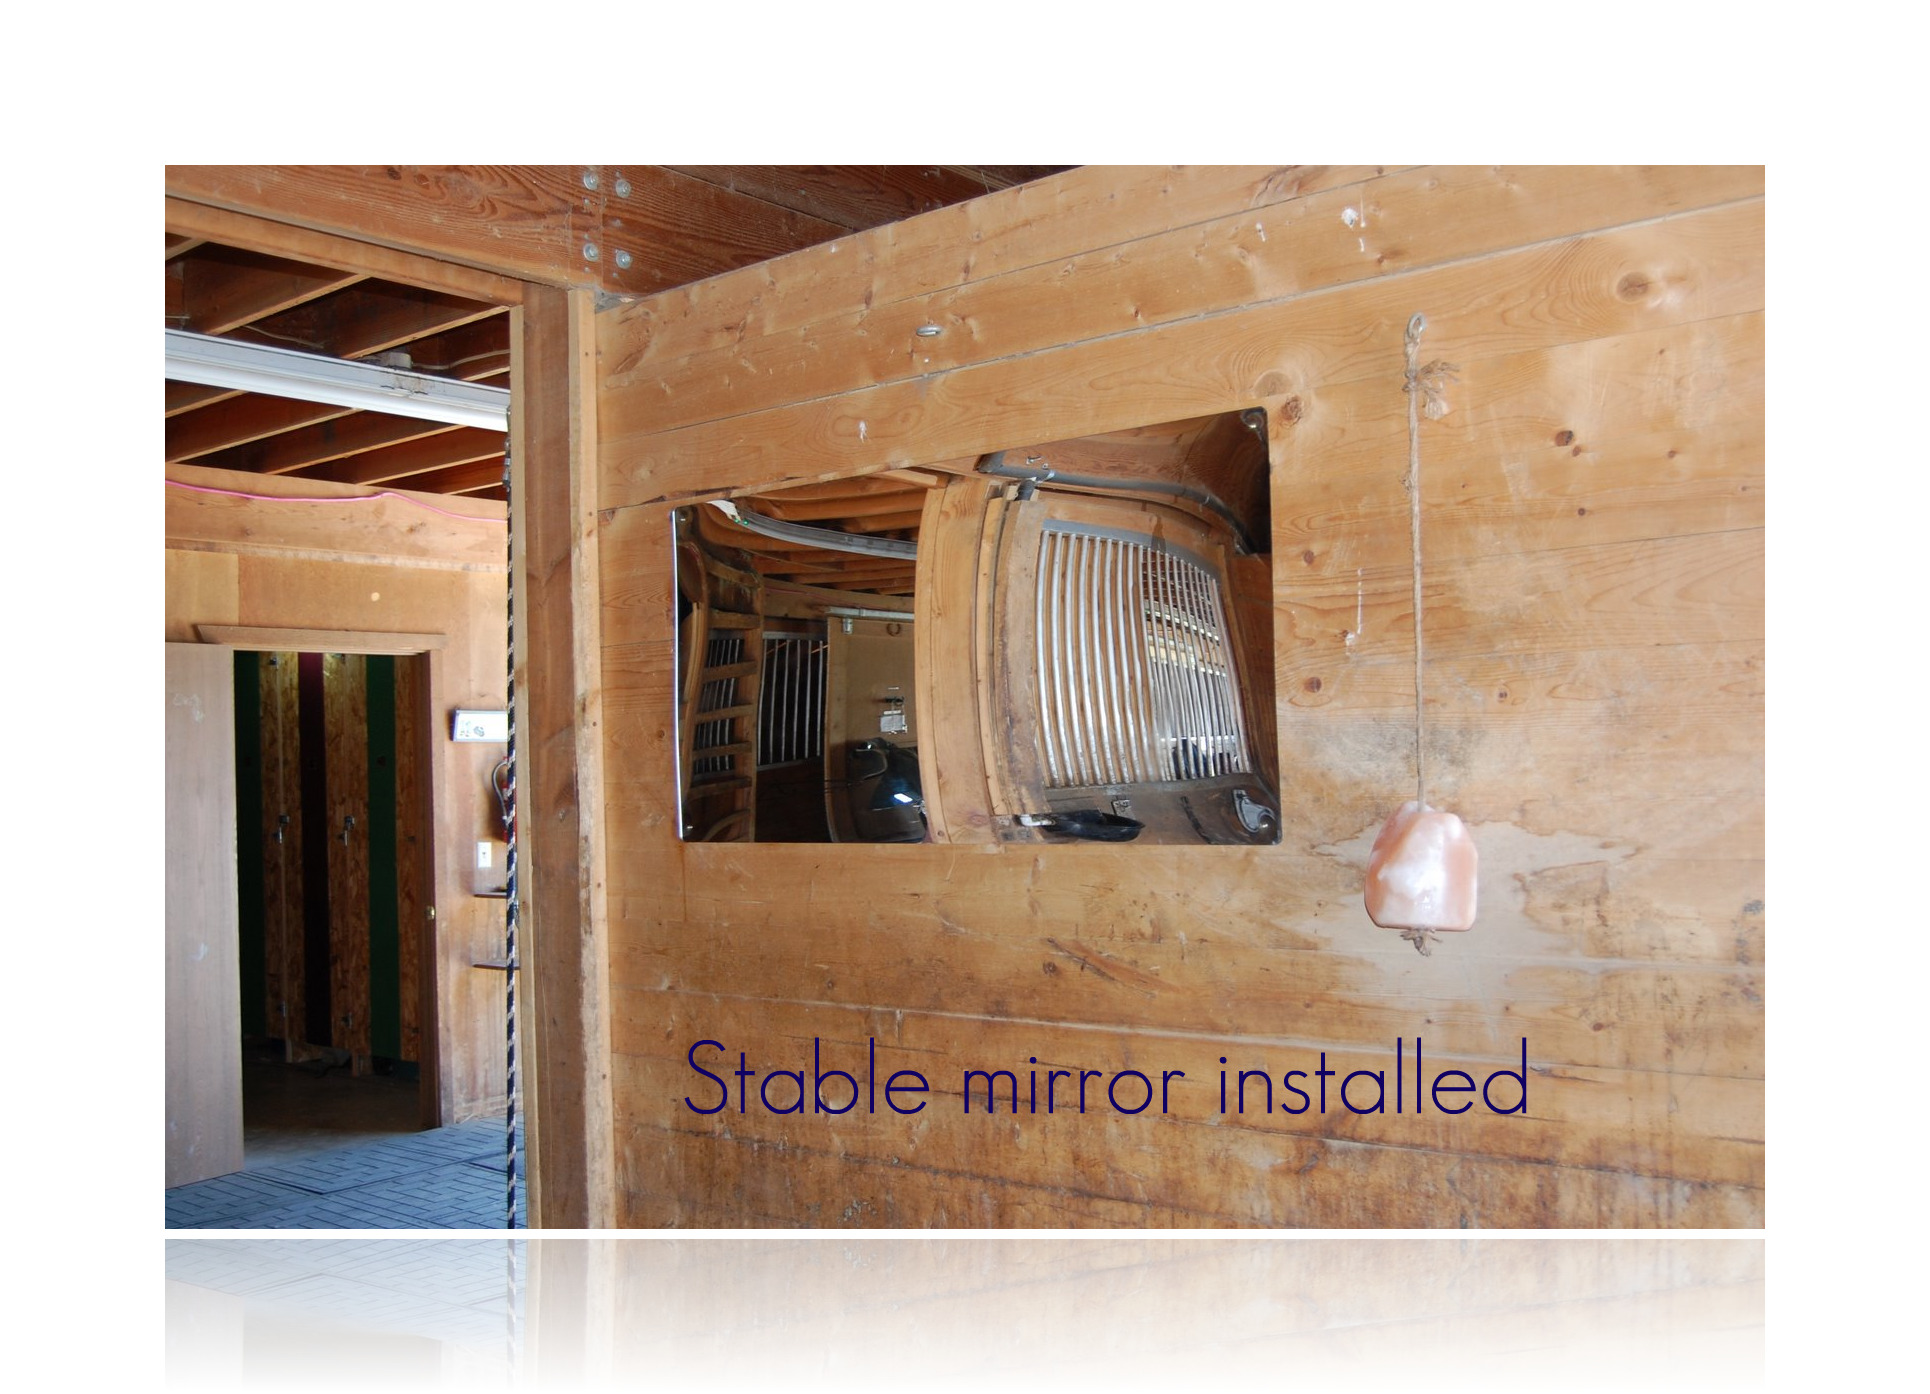 stable mirror installed